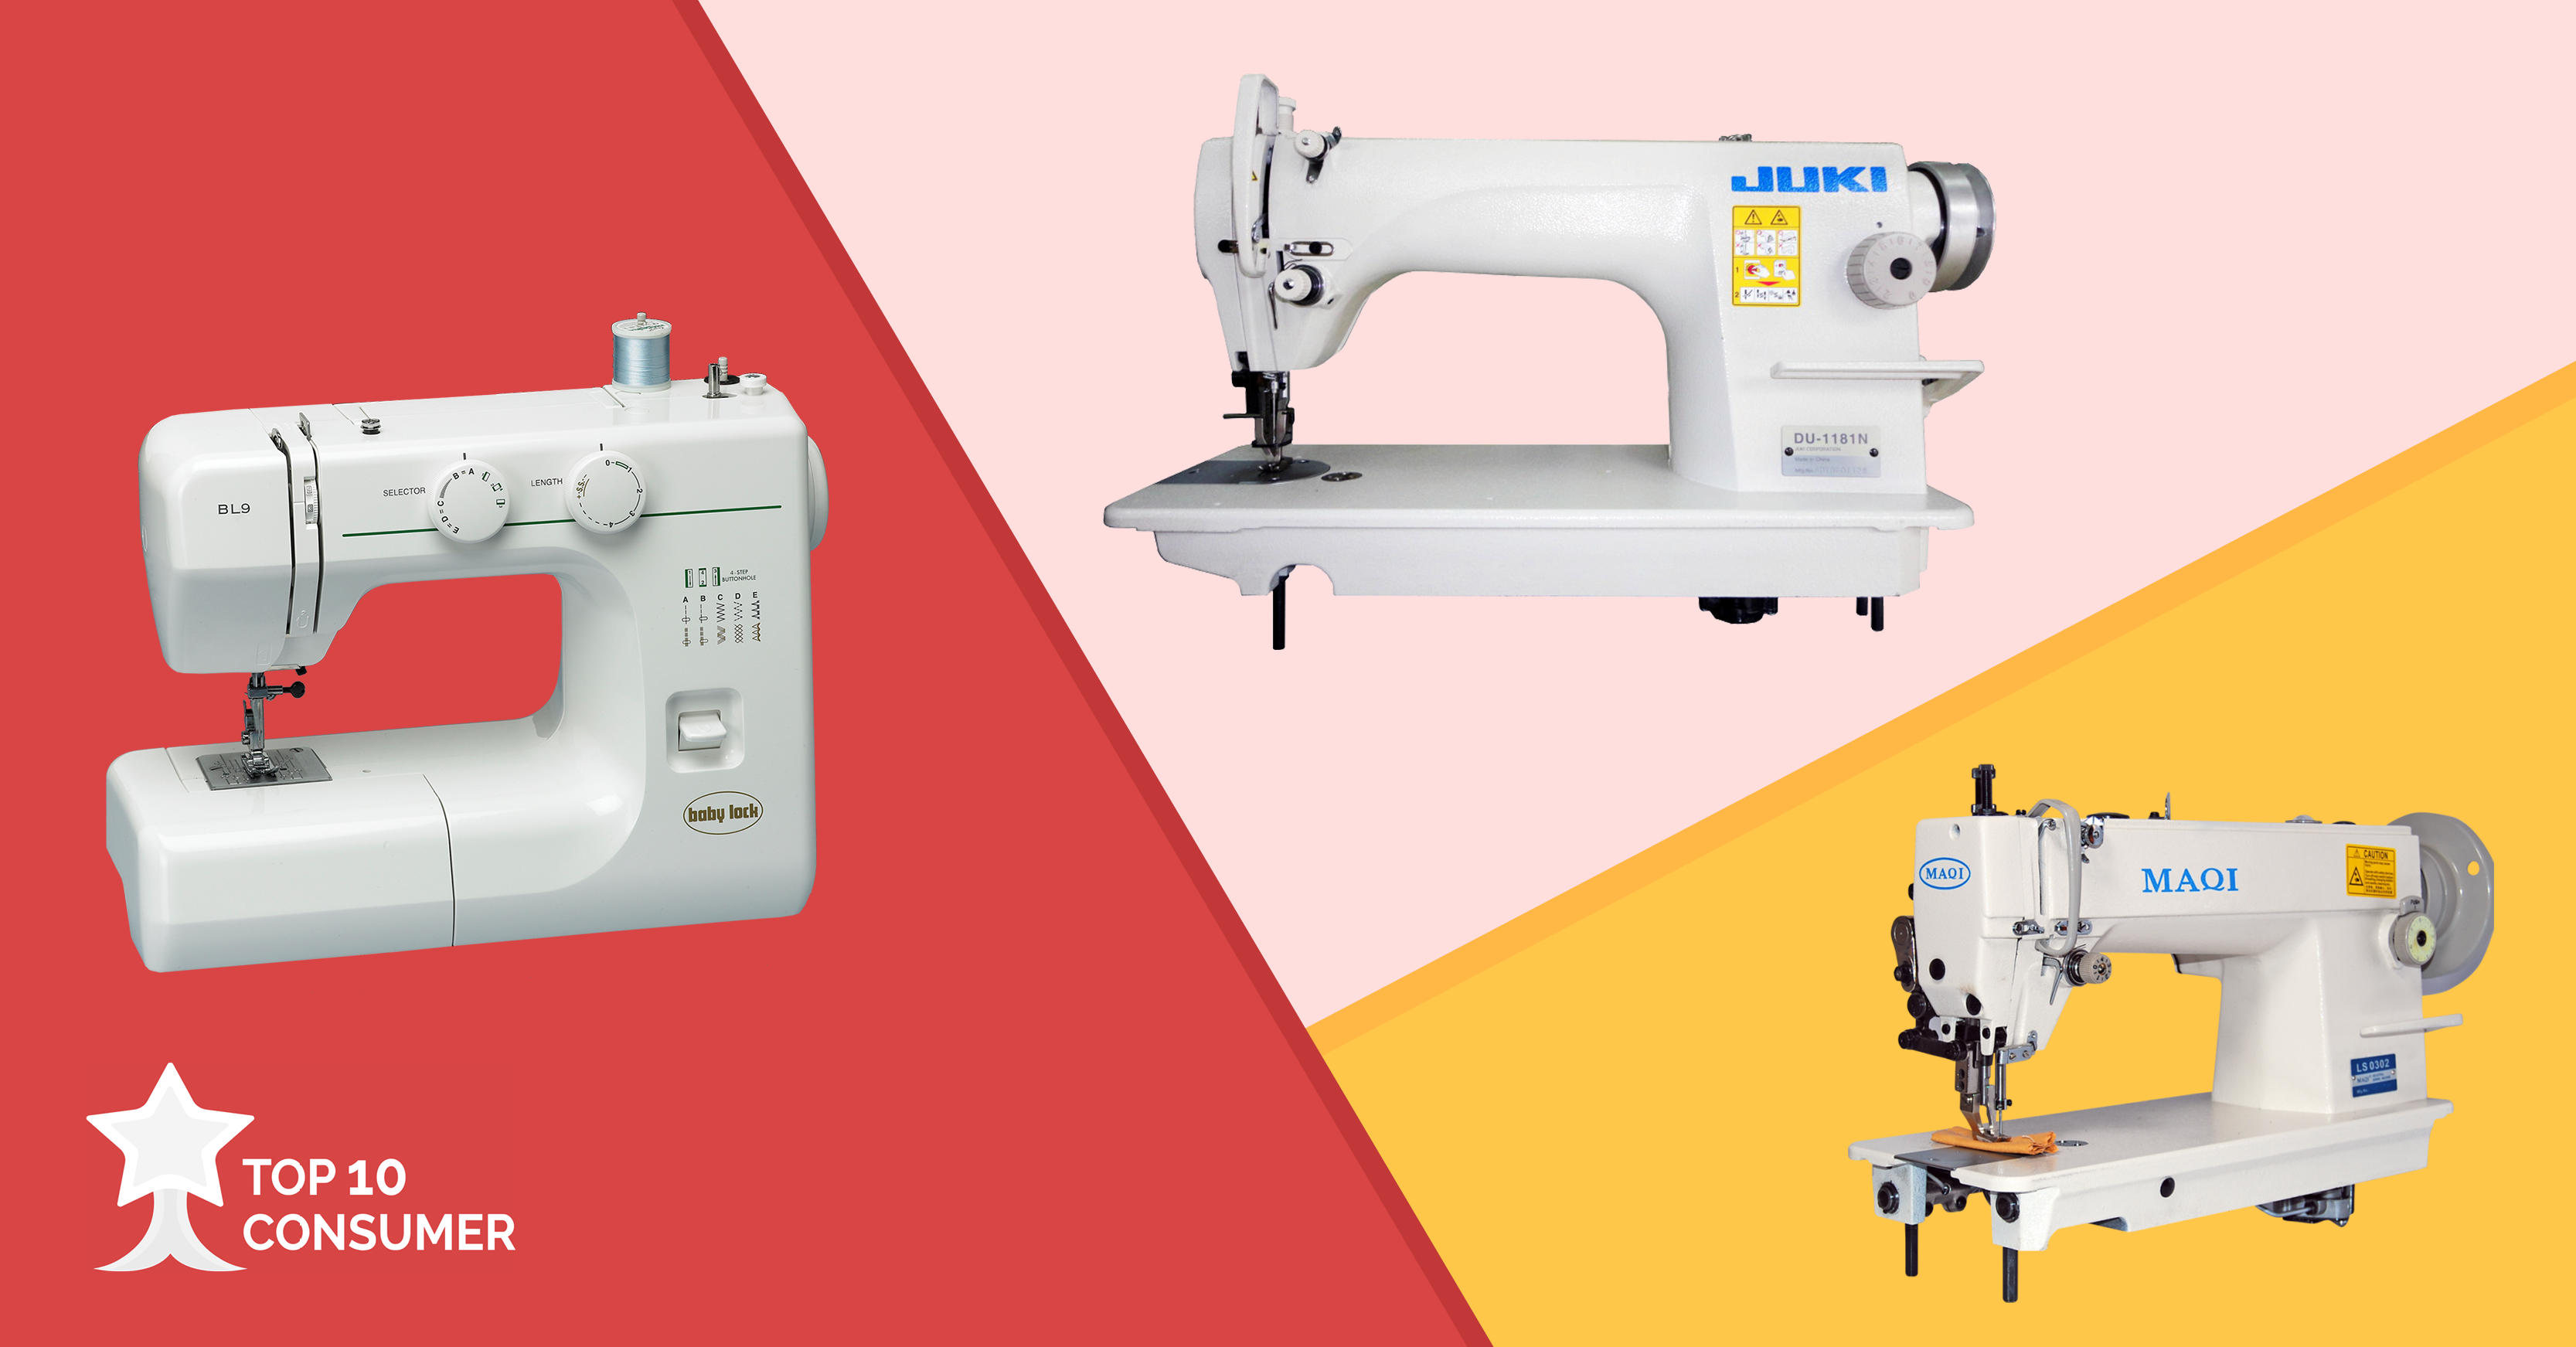 5 Best Embroidery Machines for Hats